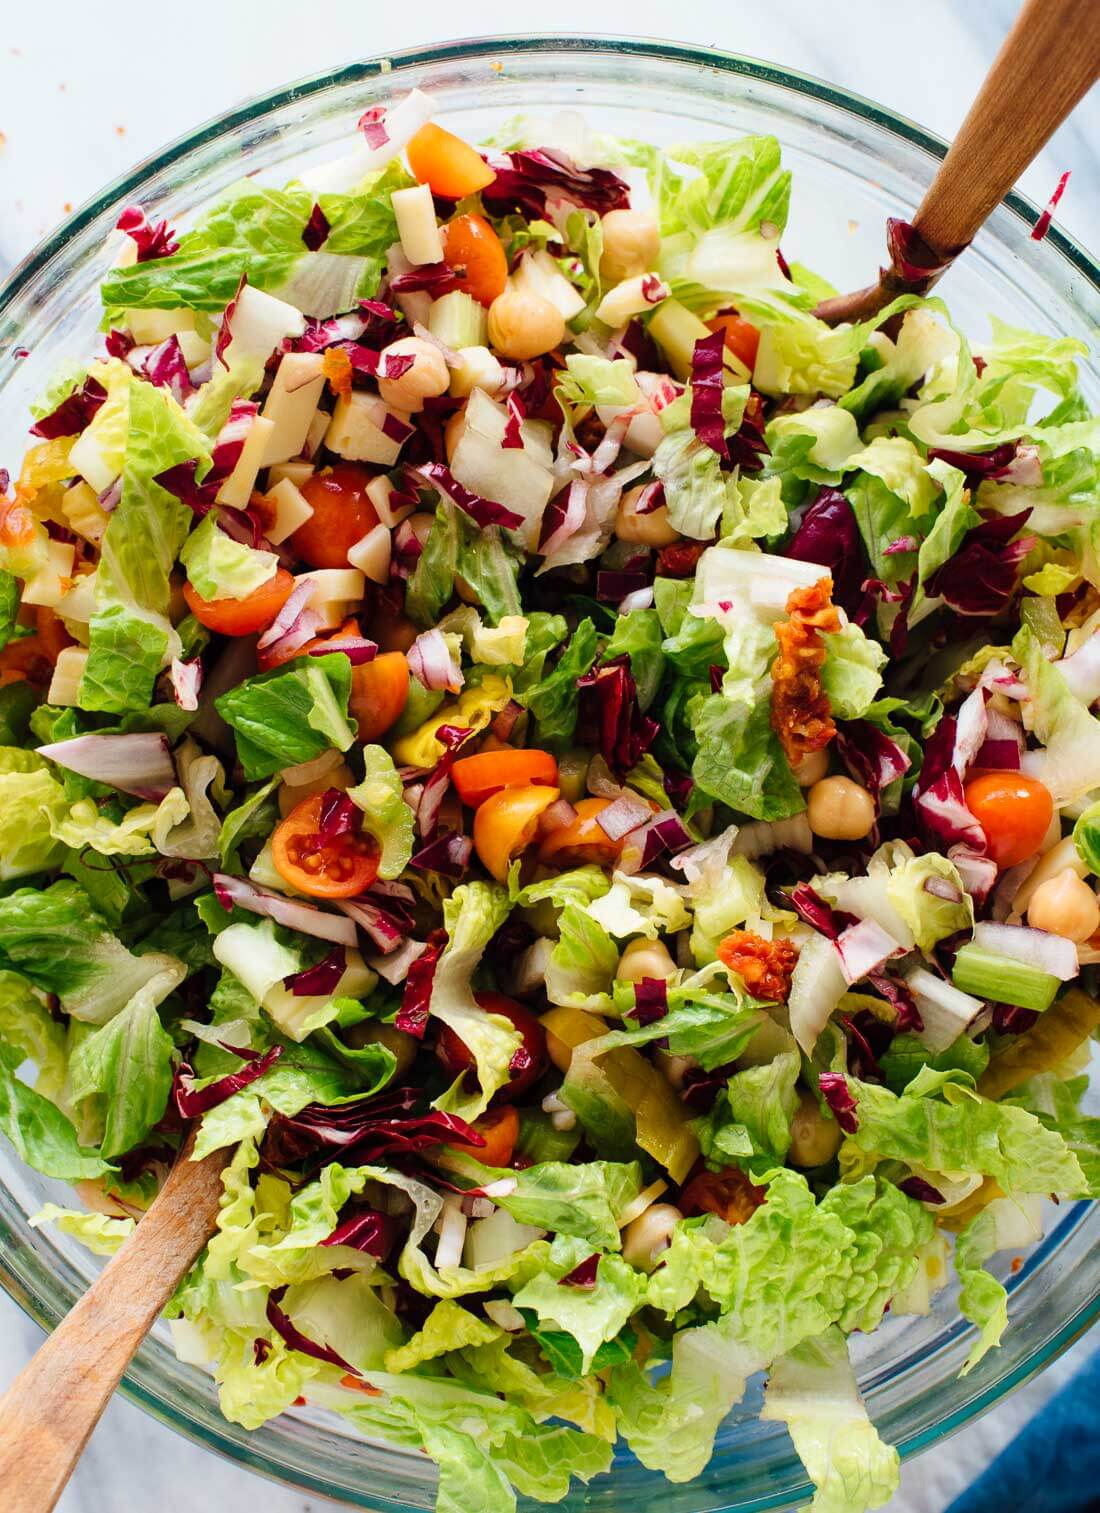 This is a healthy vegetarian salad that is delicious on its own but also goes great with any Italian entrée!